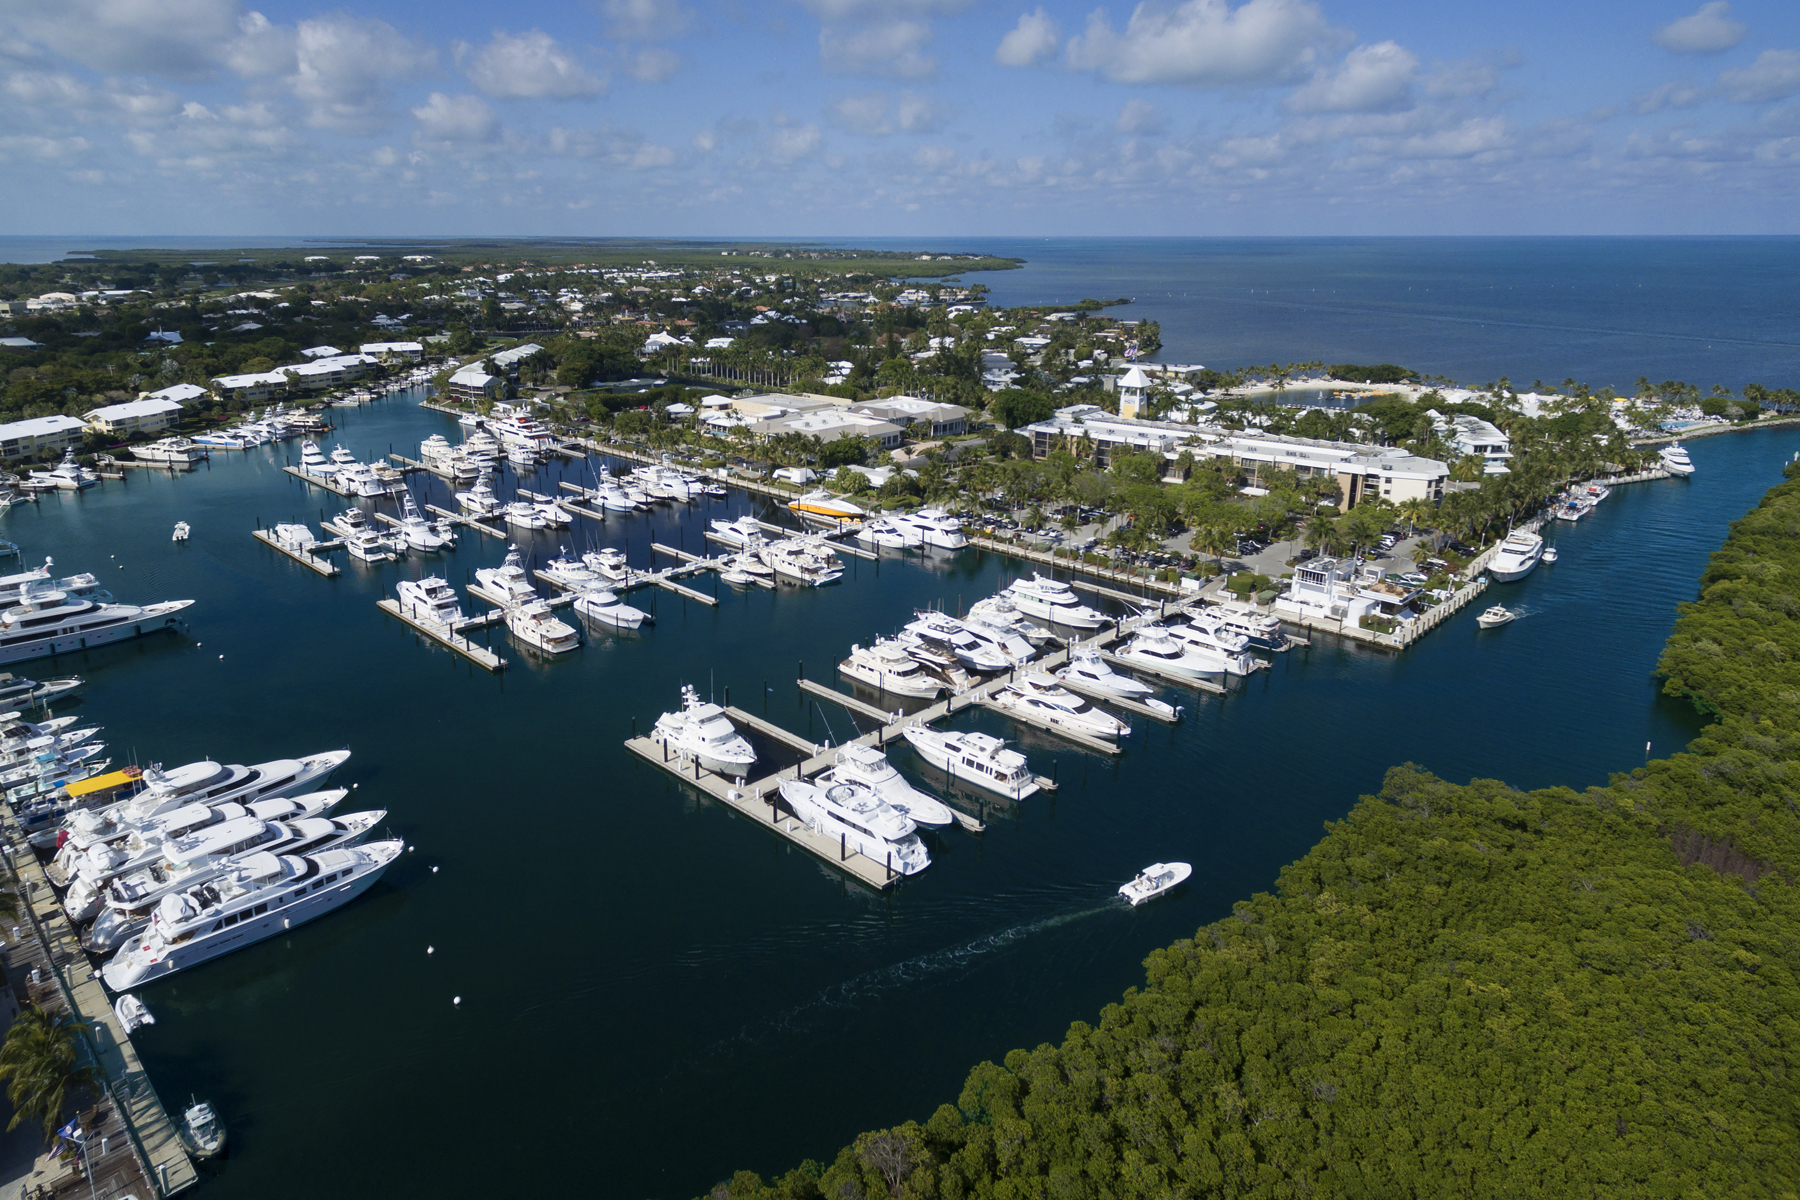 Additional photo for property listing at Ocean Reef Marina Offers Full Yacht Services 201 Ocean Reef Drive, FS-17 Key Largo, Florida 33037 Usa